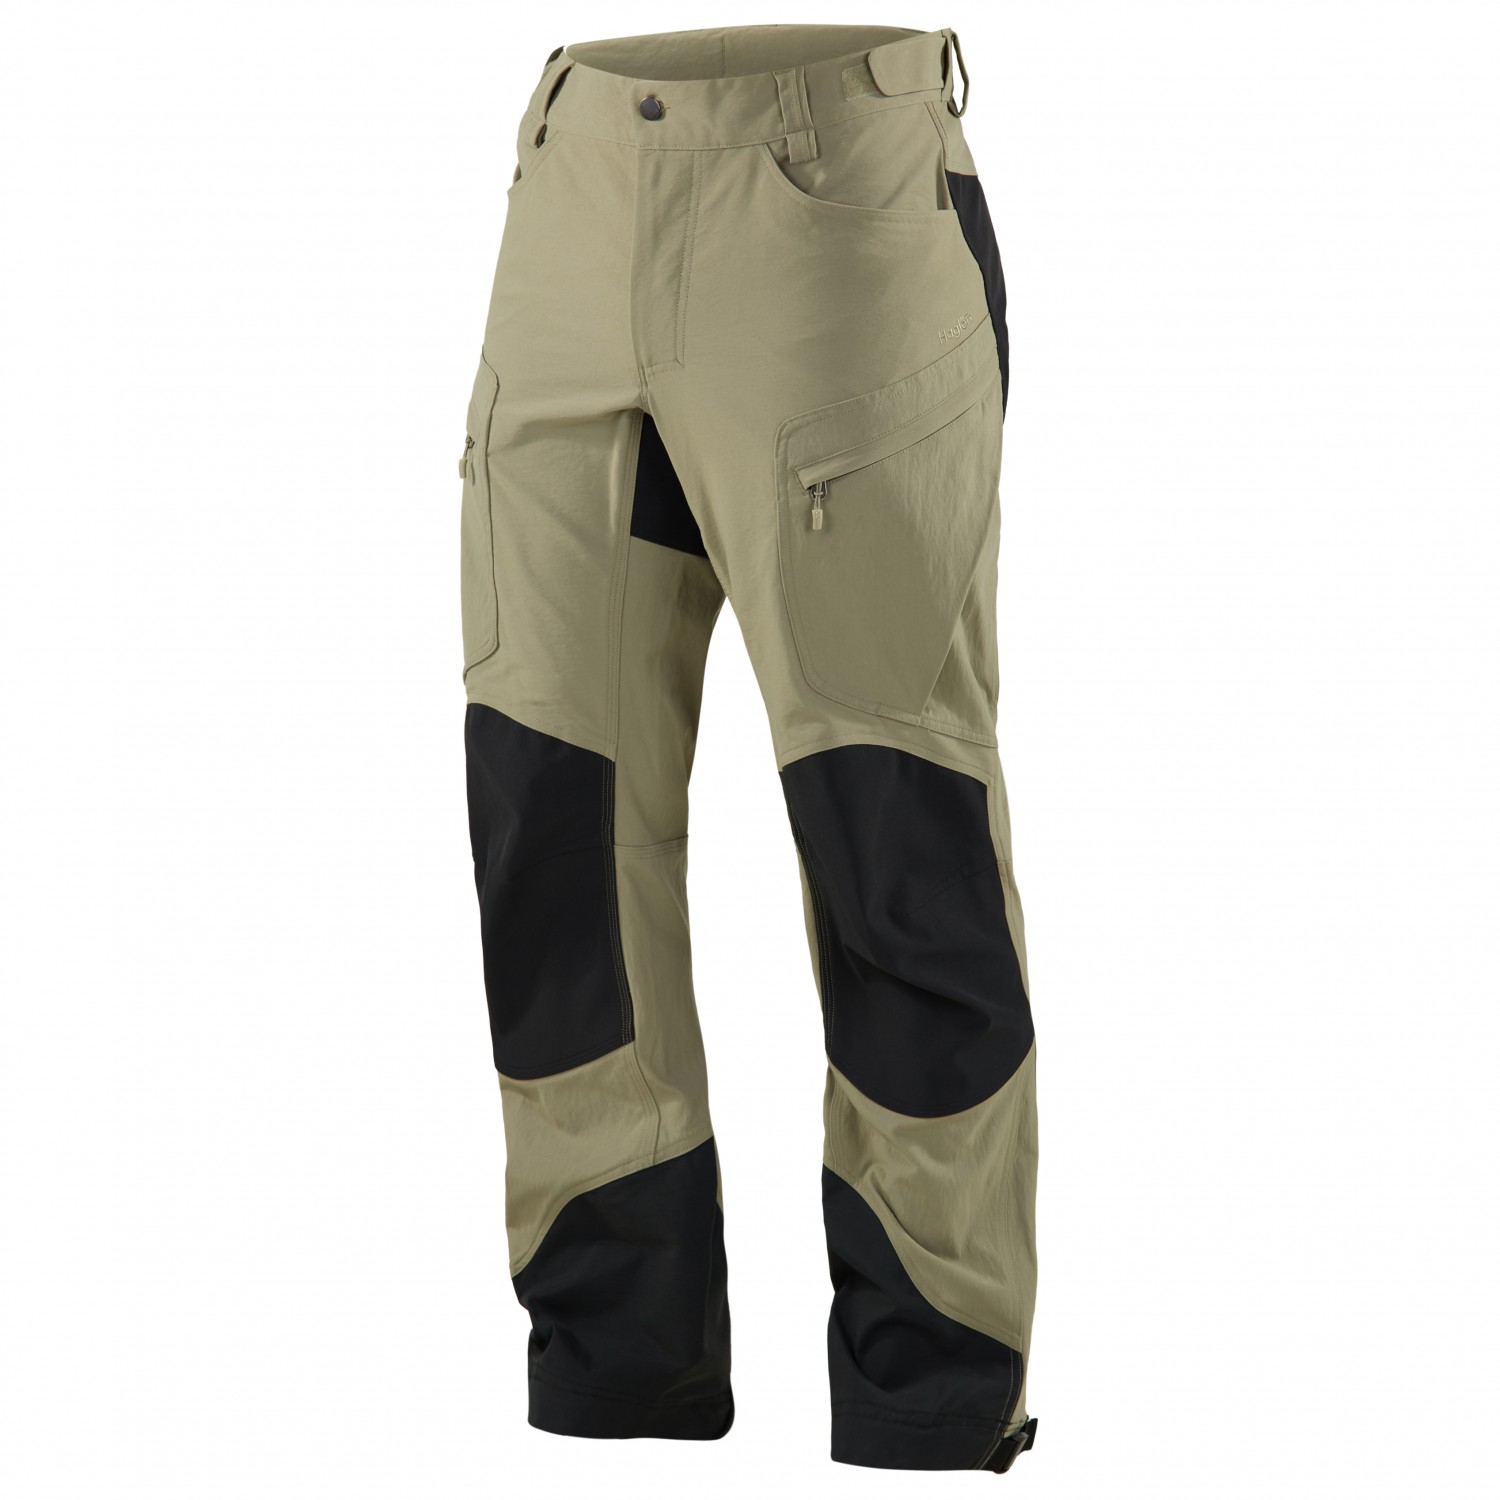 Haglöfs Rugged Mountain Pant Walking Trousers